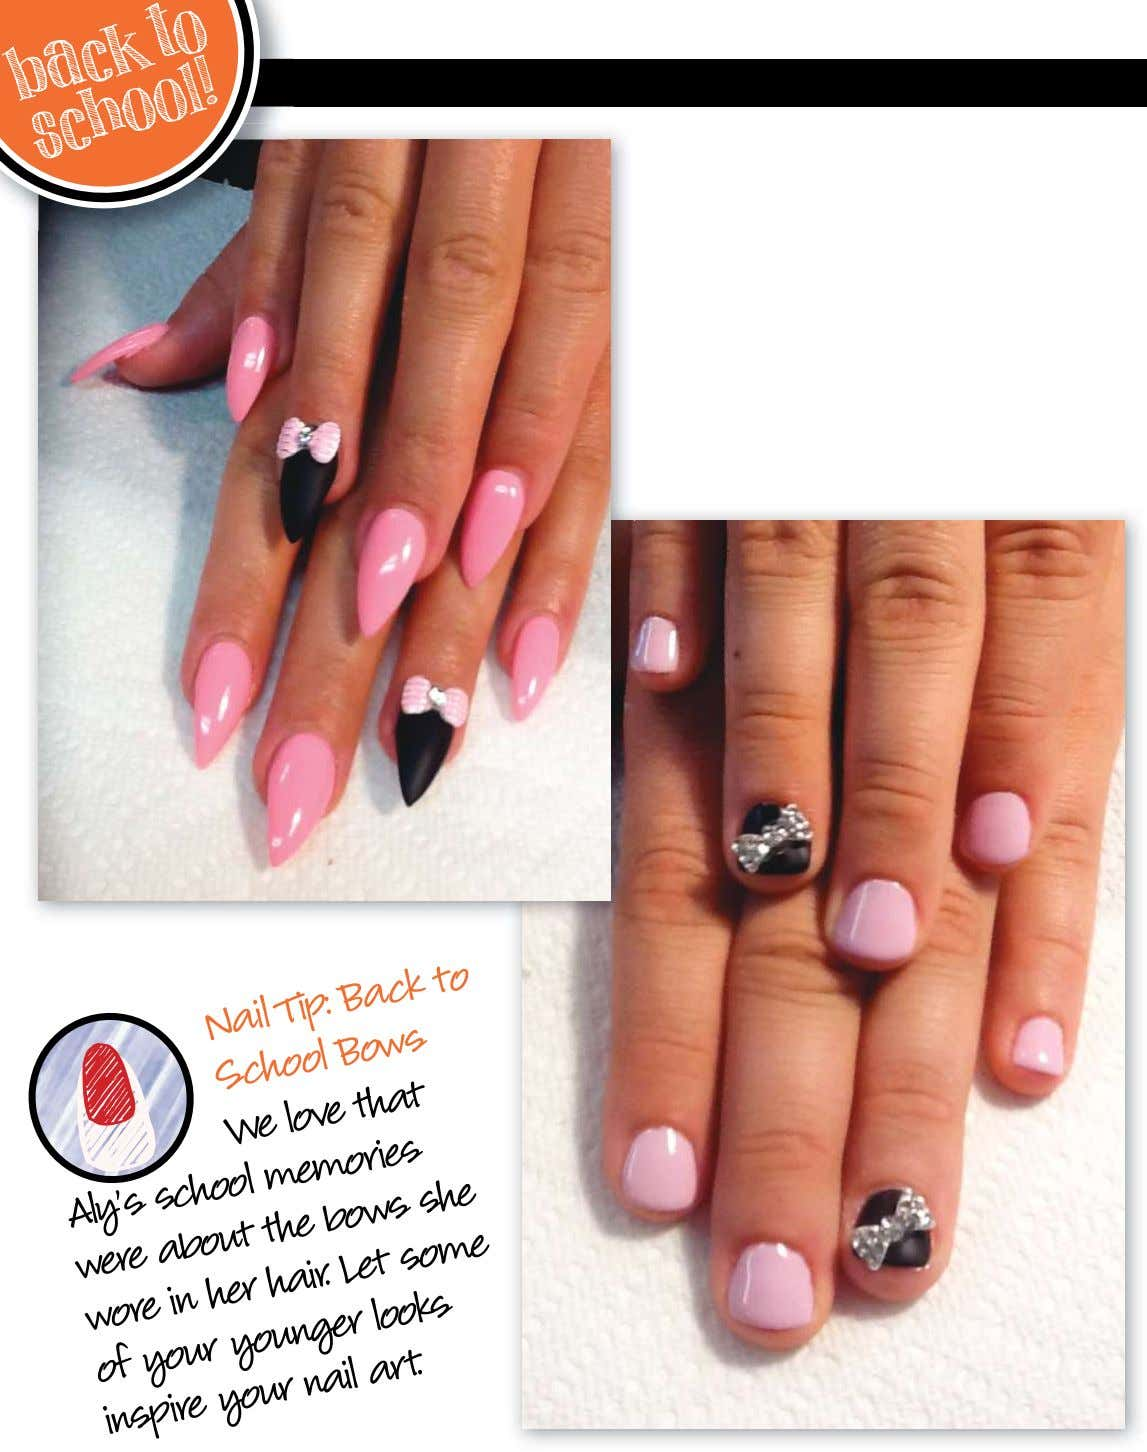 back to school! Nail Back to Tip: Bows School We that Aly's in school your